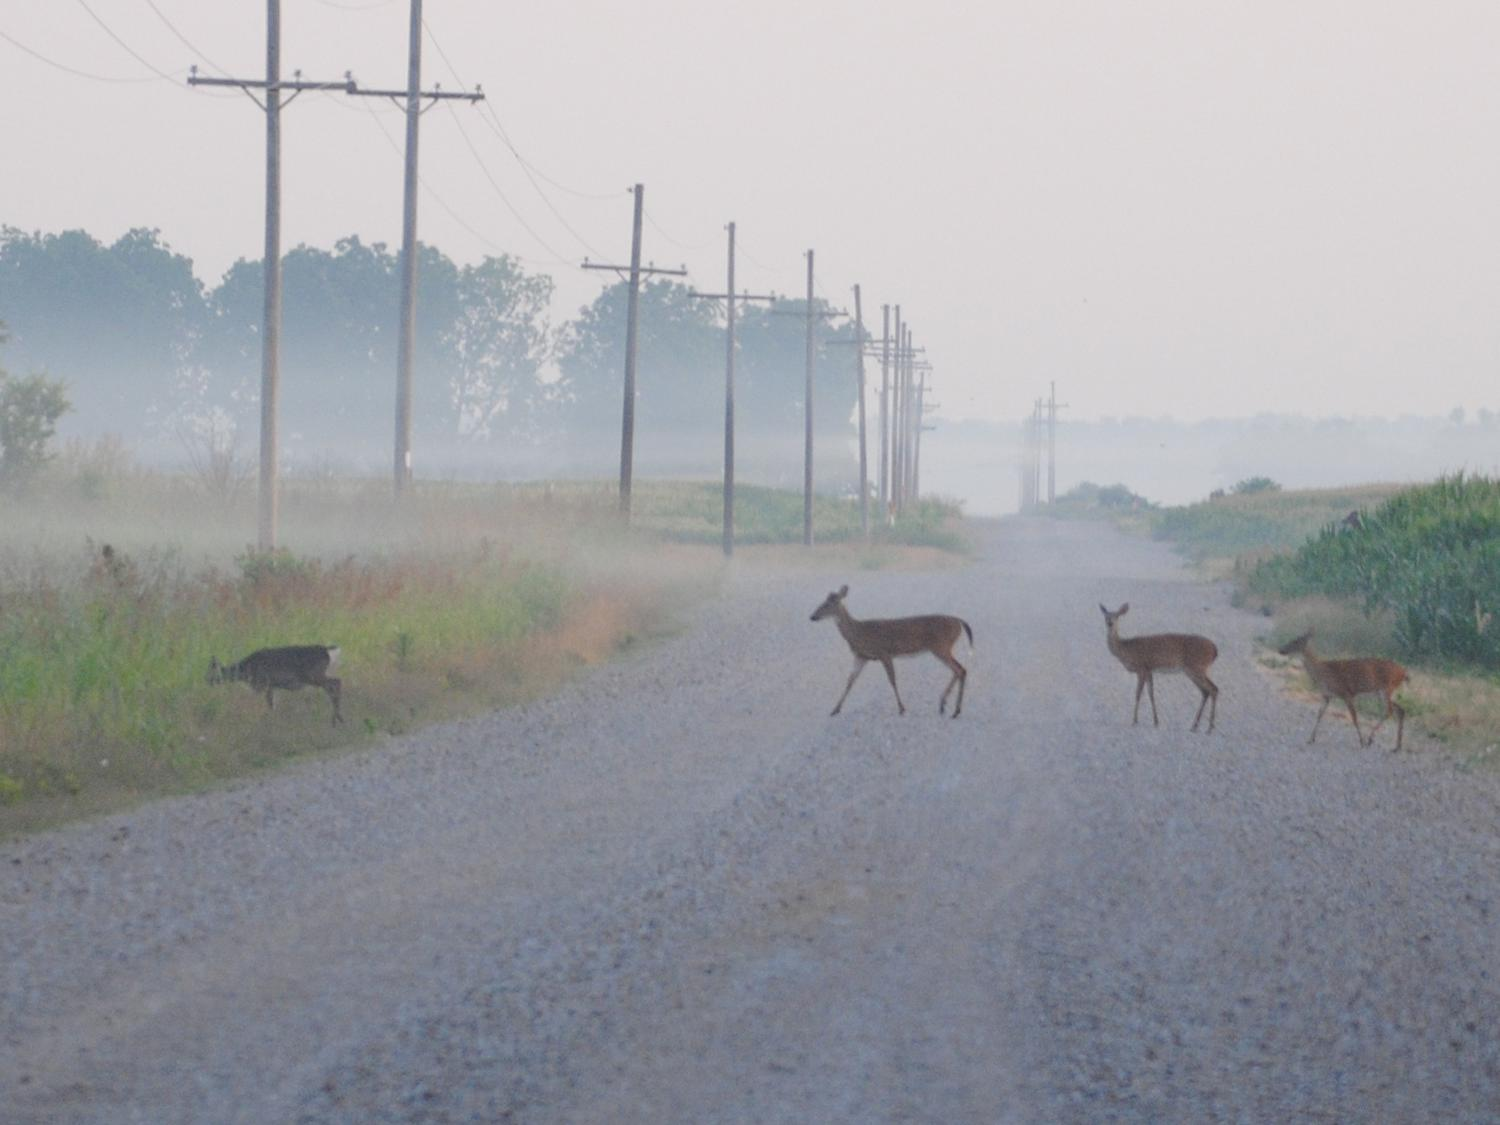 Several deer enter wooded cover area as four deer follow in single file across a gravel road with a corn field behind them on a foggy, early morning.